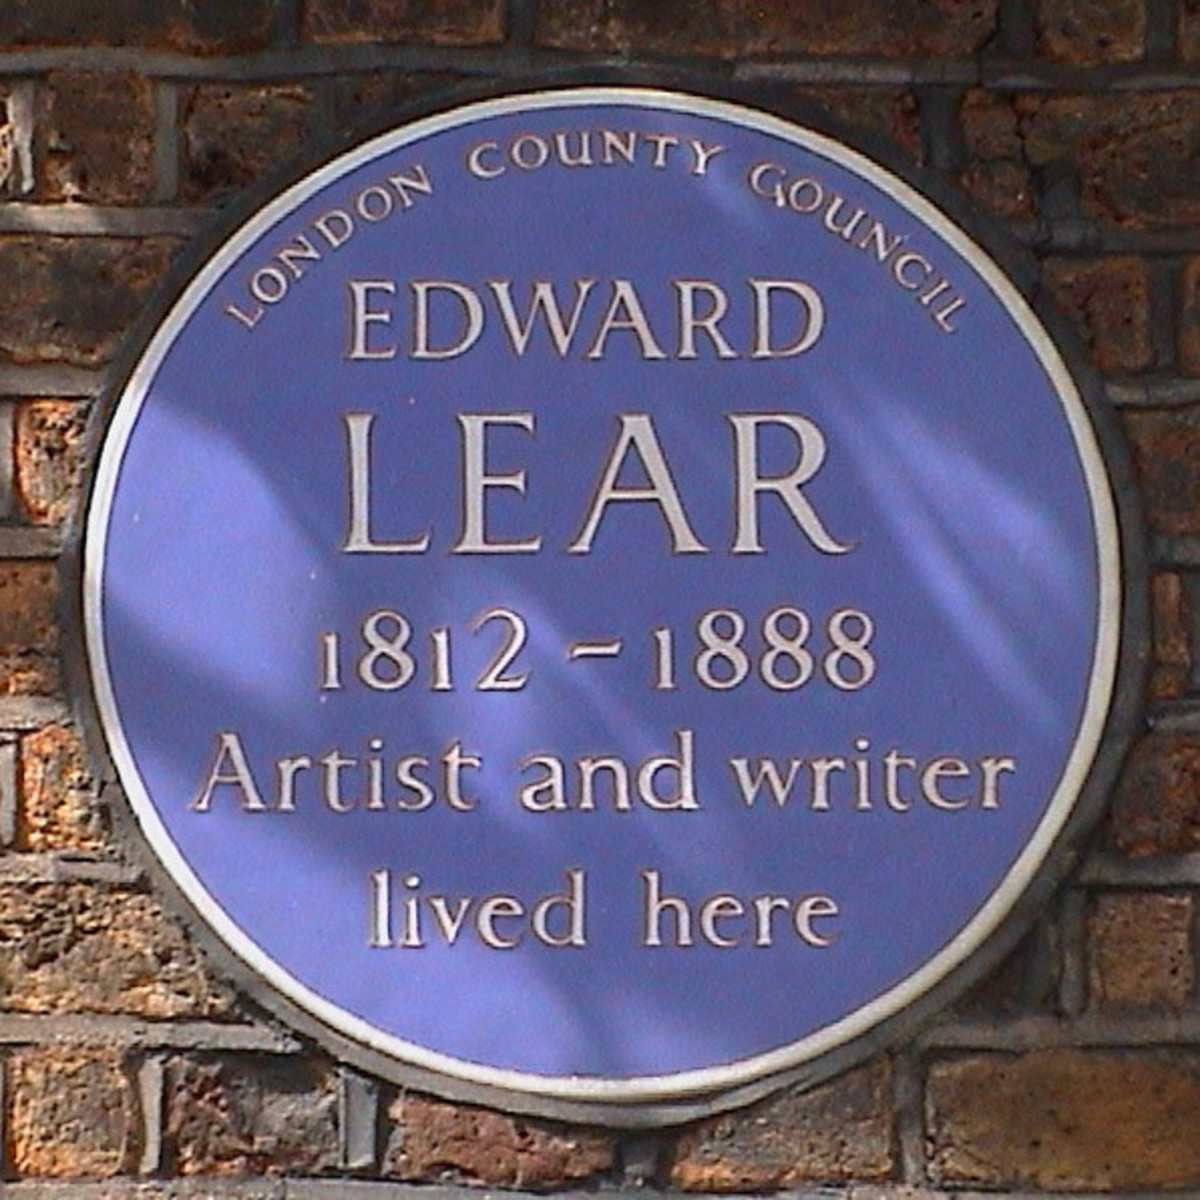 Edward Lear lived and worked in Seymour Street, London.